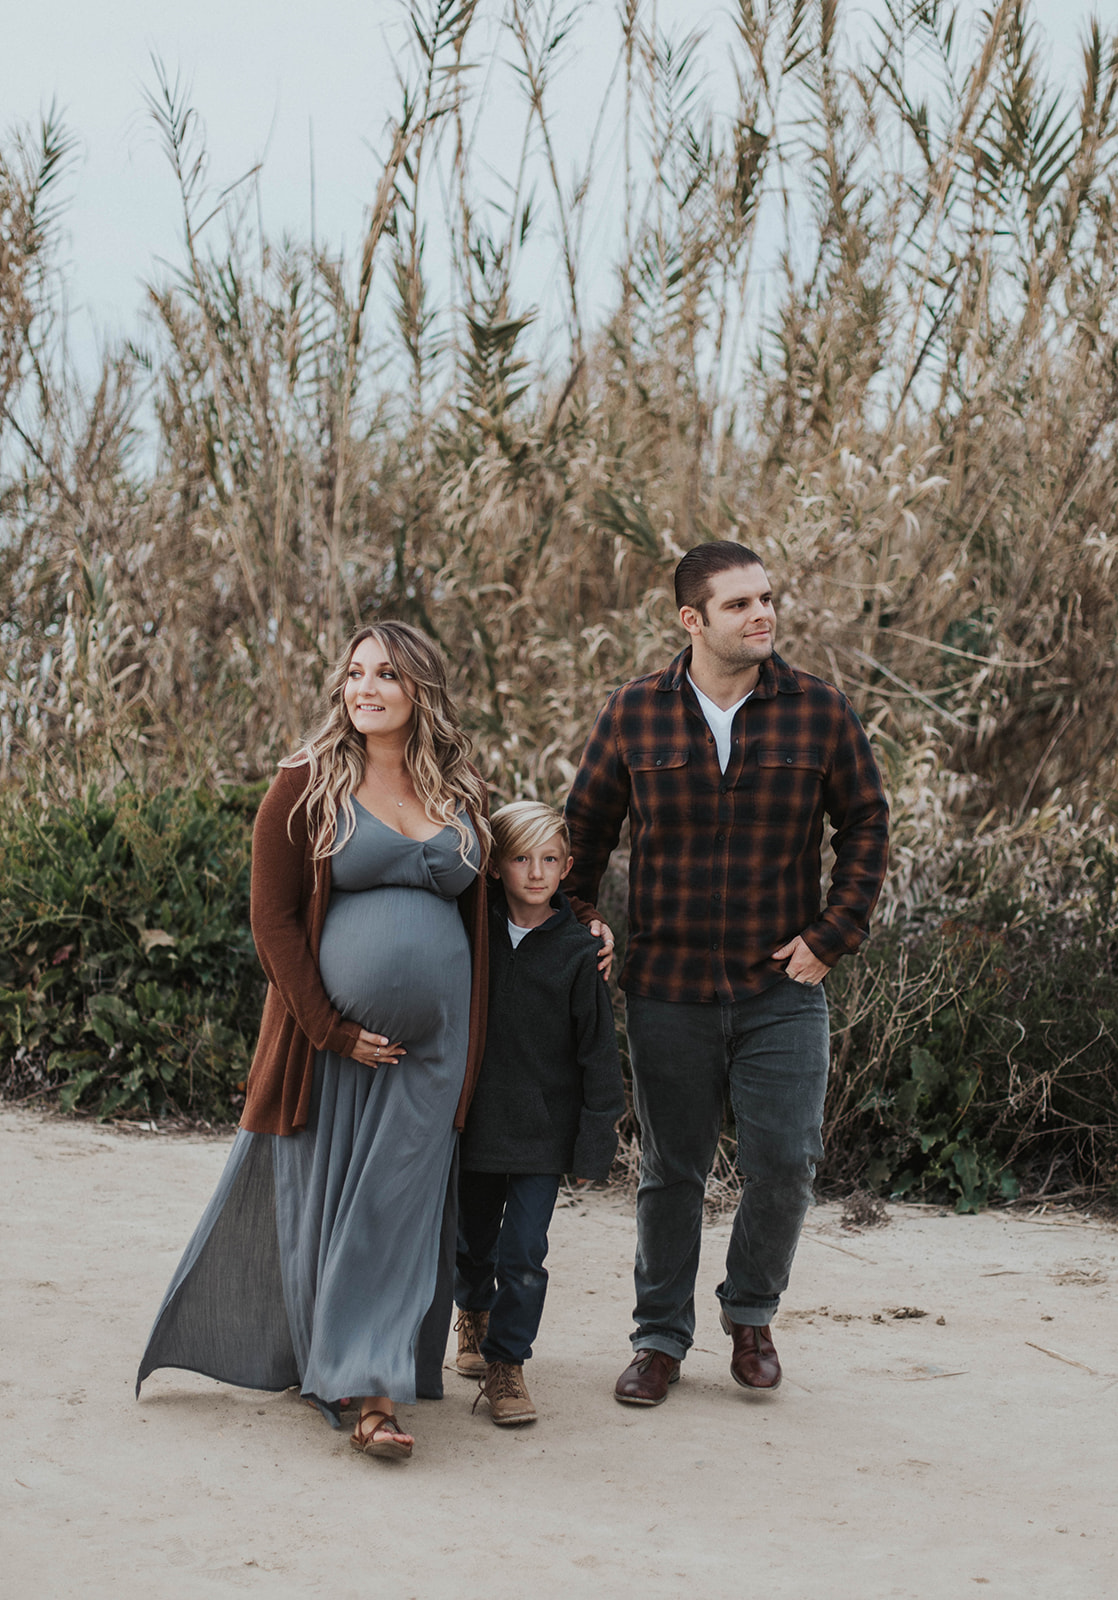 tayler-ashley photography maternity pictures del mar cliffs san diego {virginia beach chesapeake lifestyle child couples family military homecoming photographer holistic healer transformational mentor}